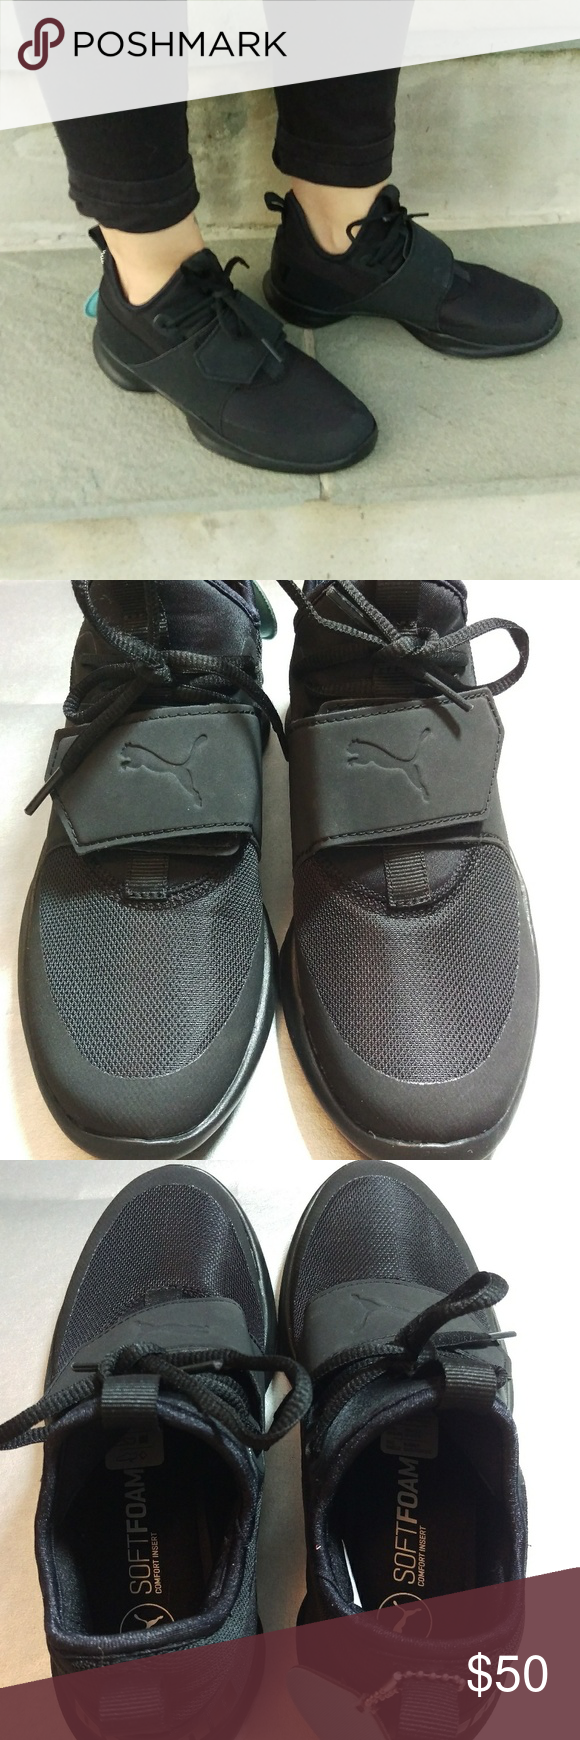 New Puma Dare Trainer Sneakers ITEM  New Puma Dare Trainer Slip On Sneaker  COLOR  Black CONDITION  New DAMAGE  None. May have tiny markings from ... d10662555